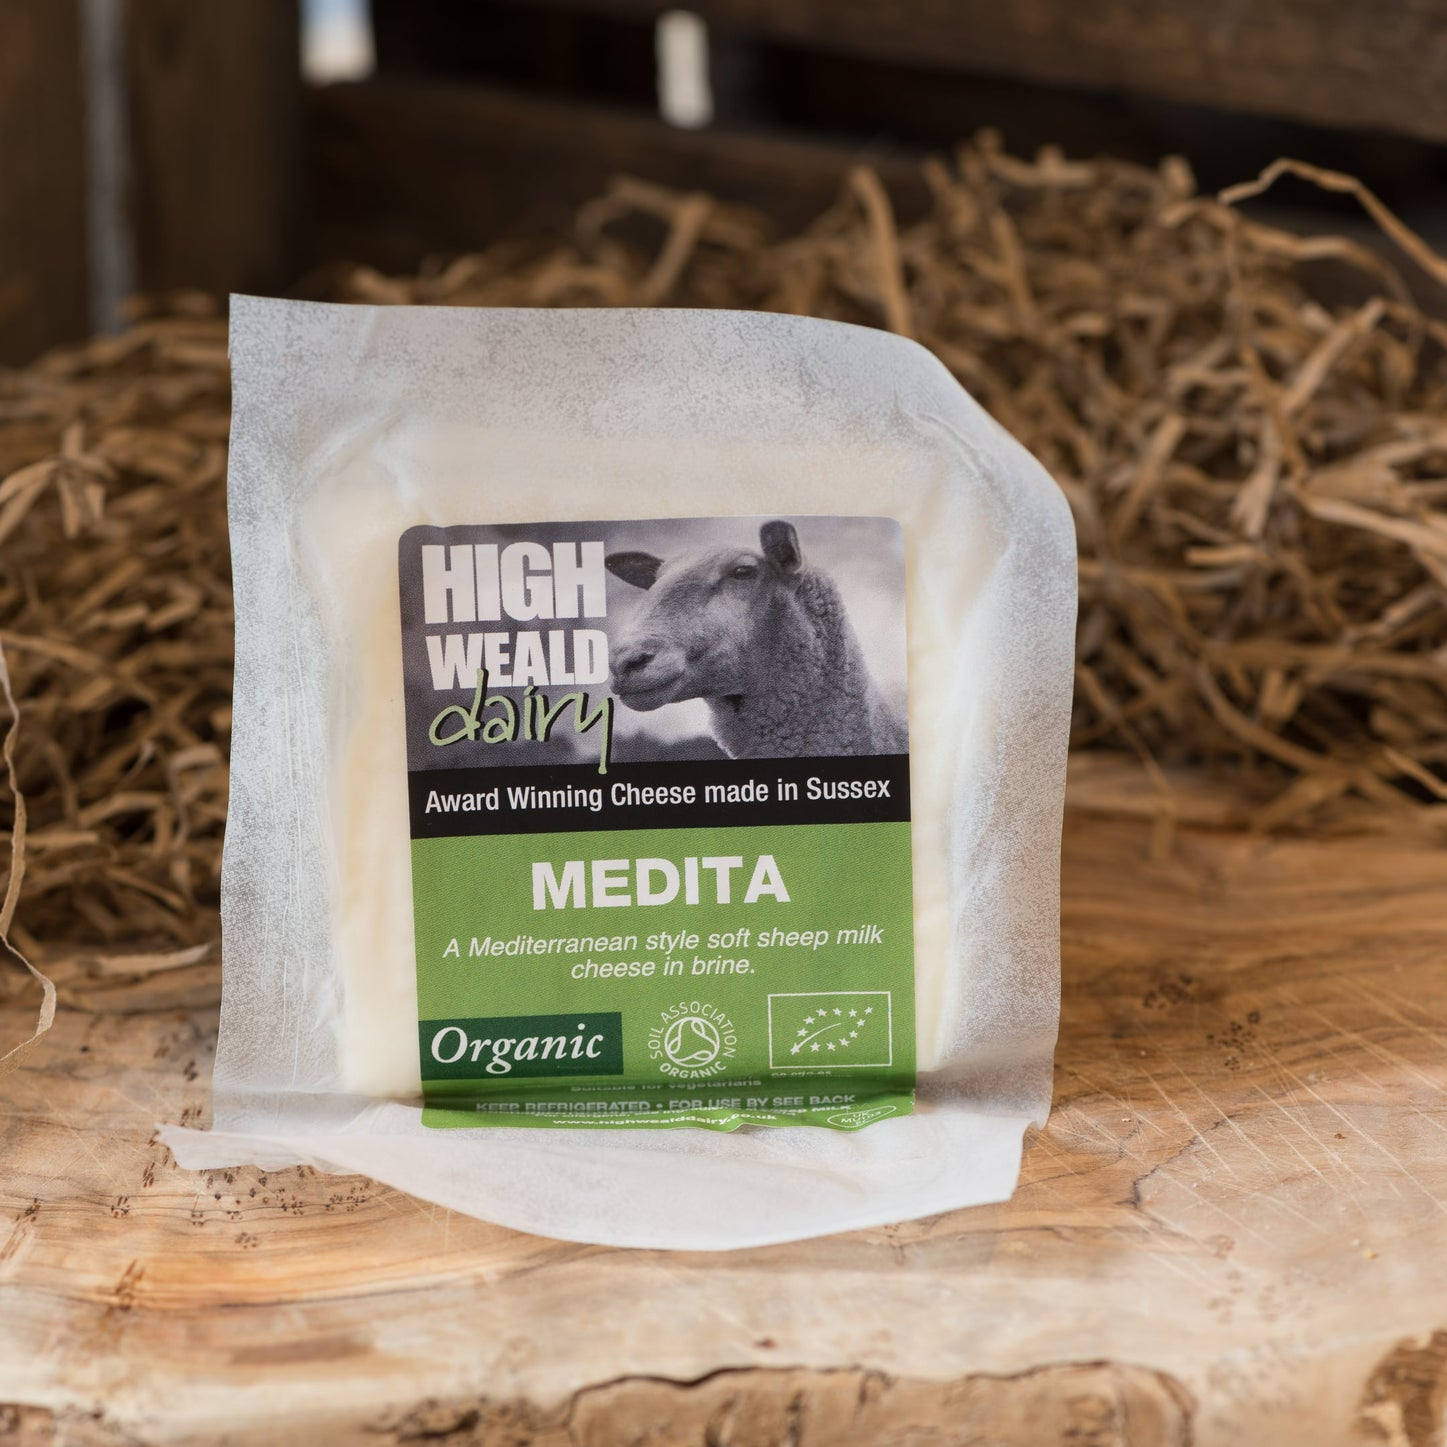 Medita (FETA) Organic Sheep